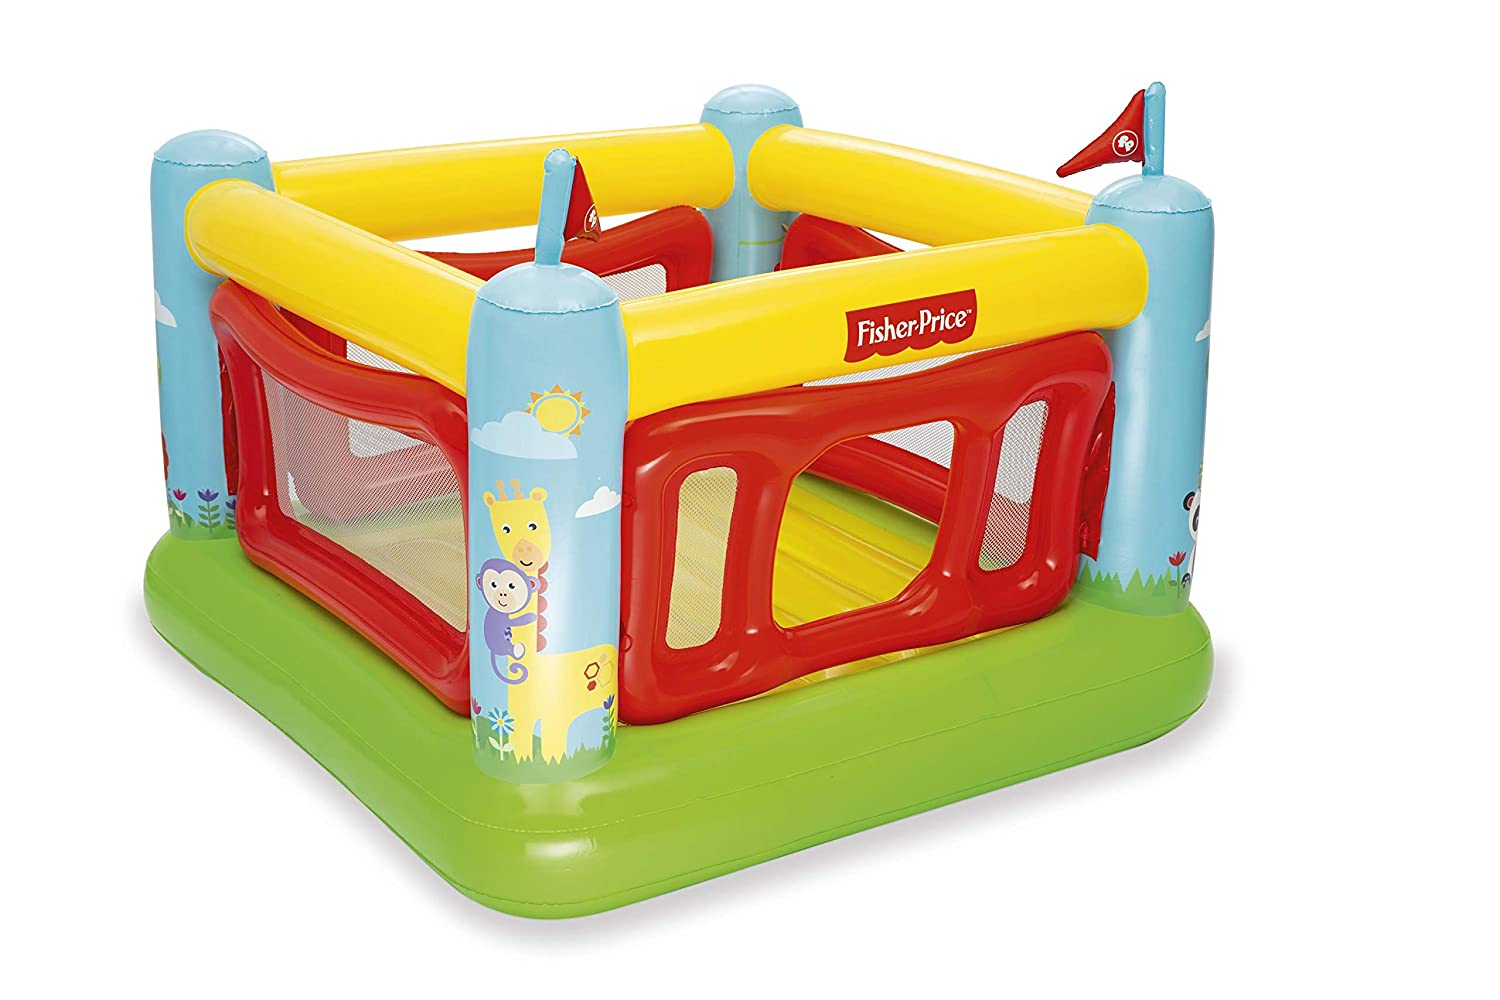 Bestway 93536-19 Fisher Price - Castillo Hinchable (175 x ...